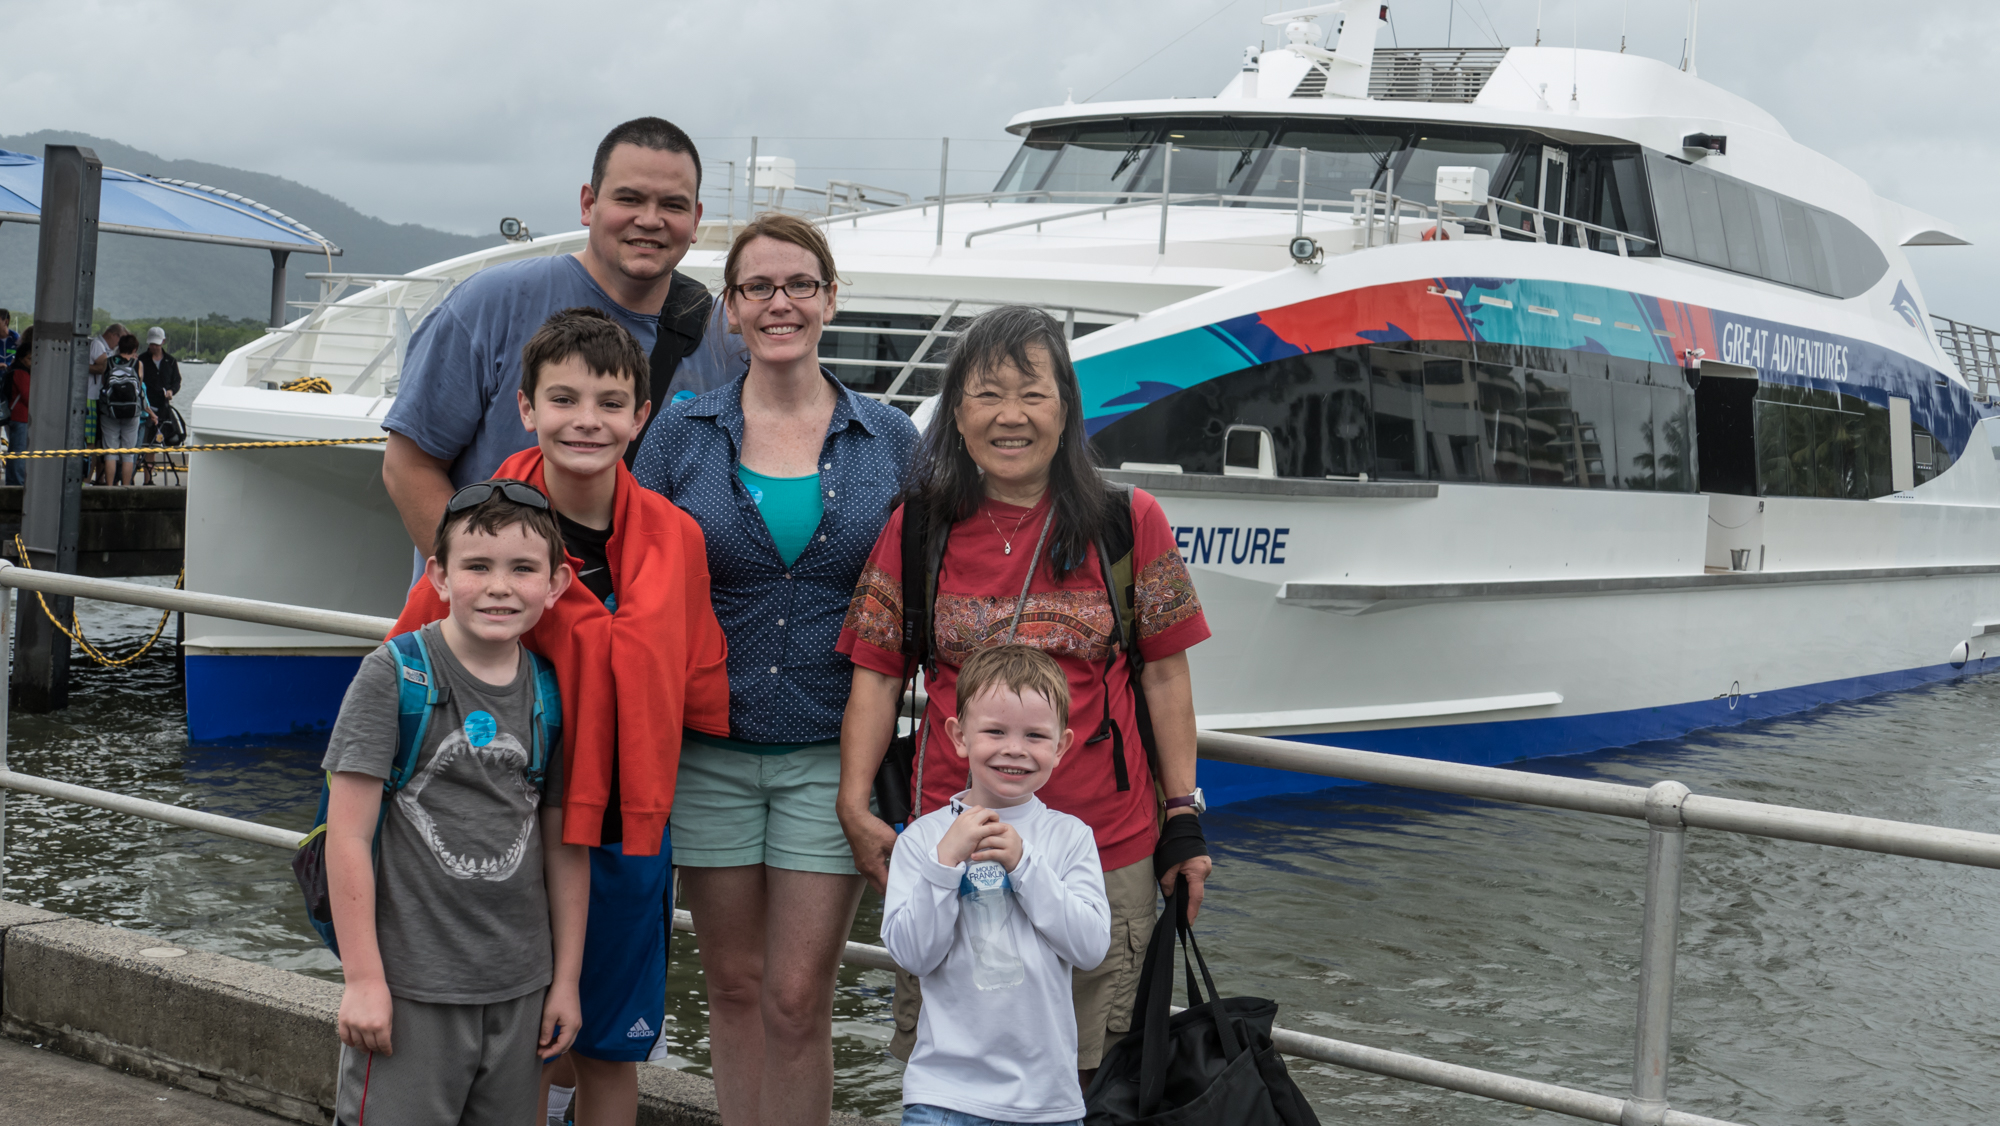 Following a family tradition, here we are posing in front of the wrong boat.